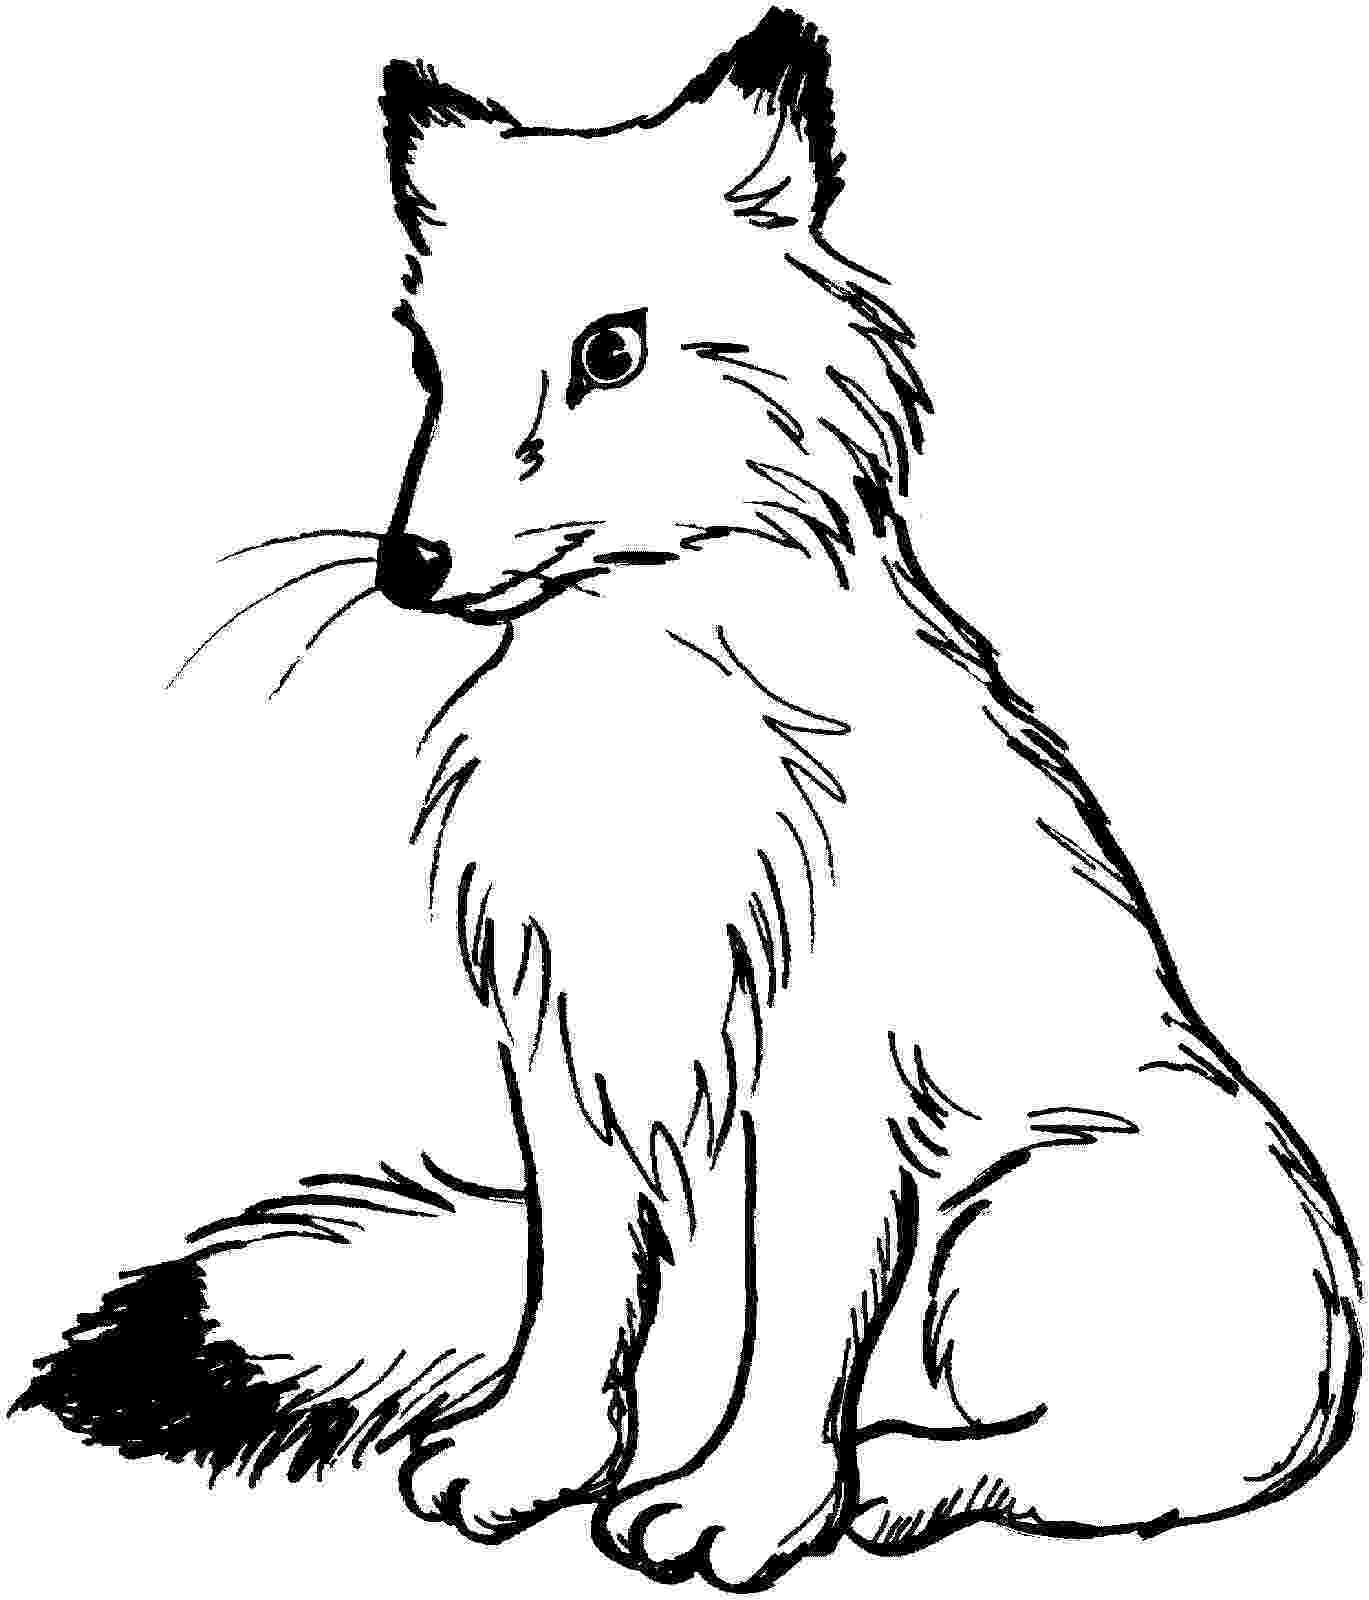 red fox coloring page fox red coloring page coloring fox red page